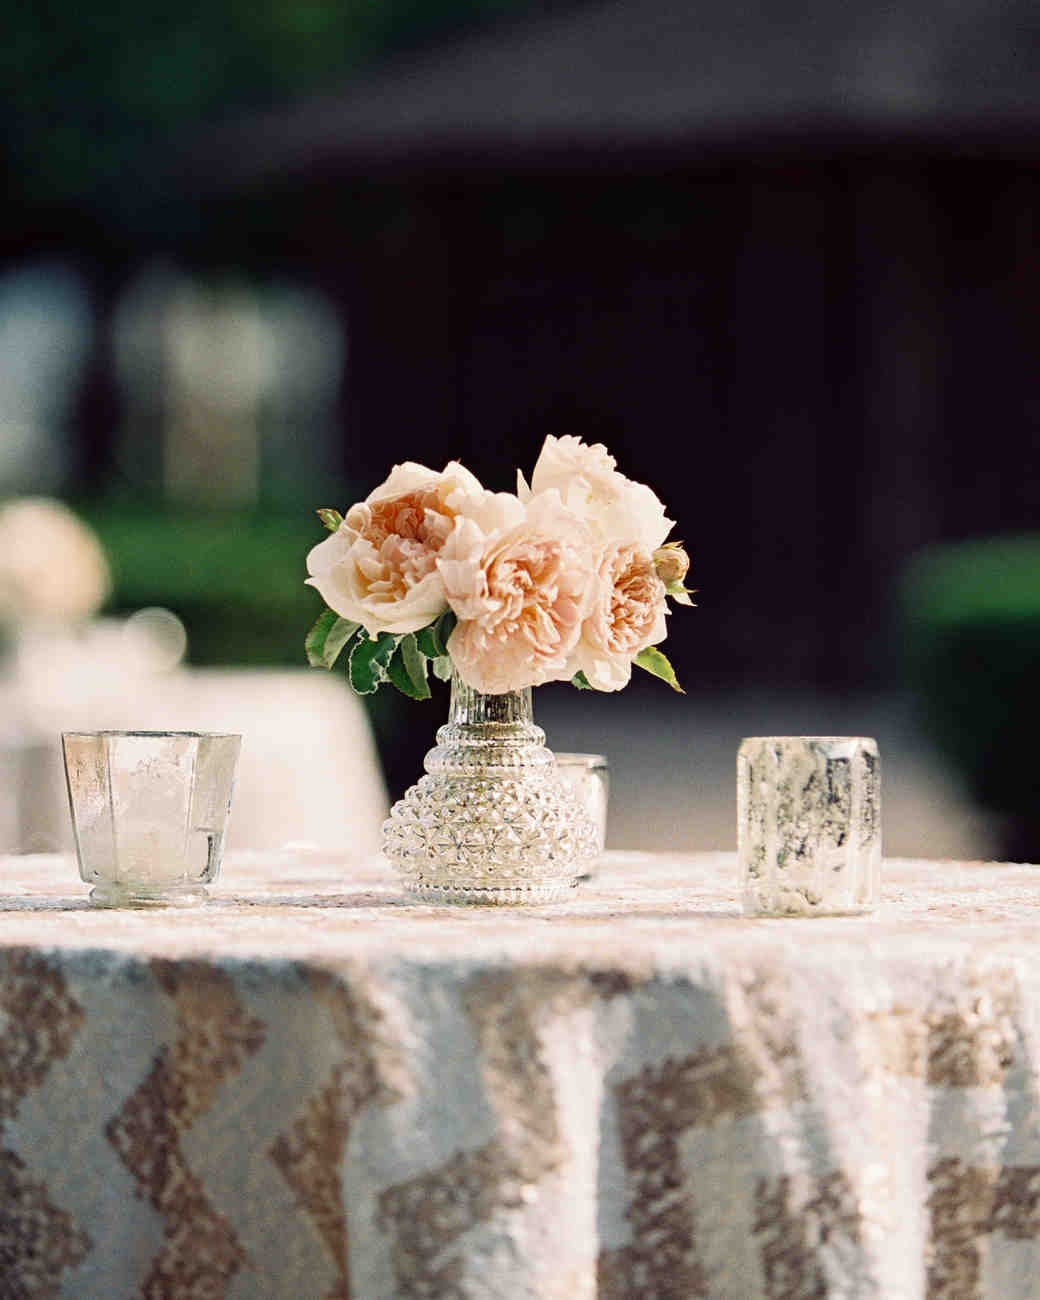 Flowers For Wedding Table Centerpieces: 36 Simple Wedding Centerpieces